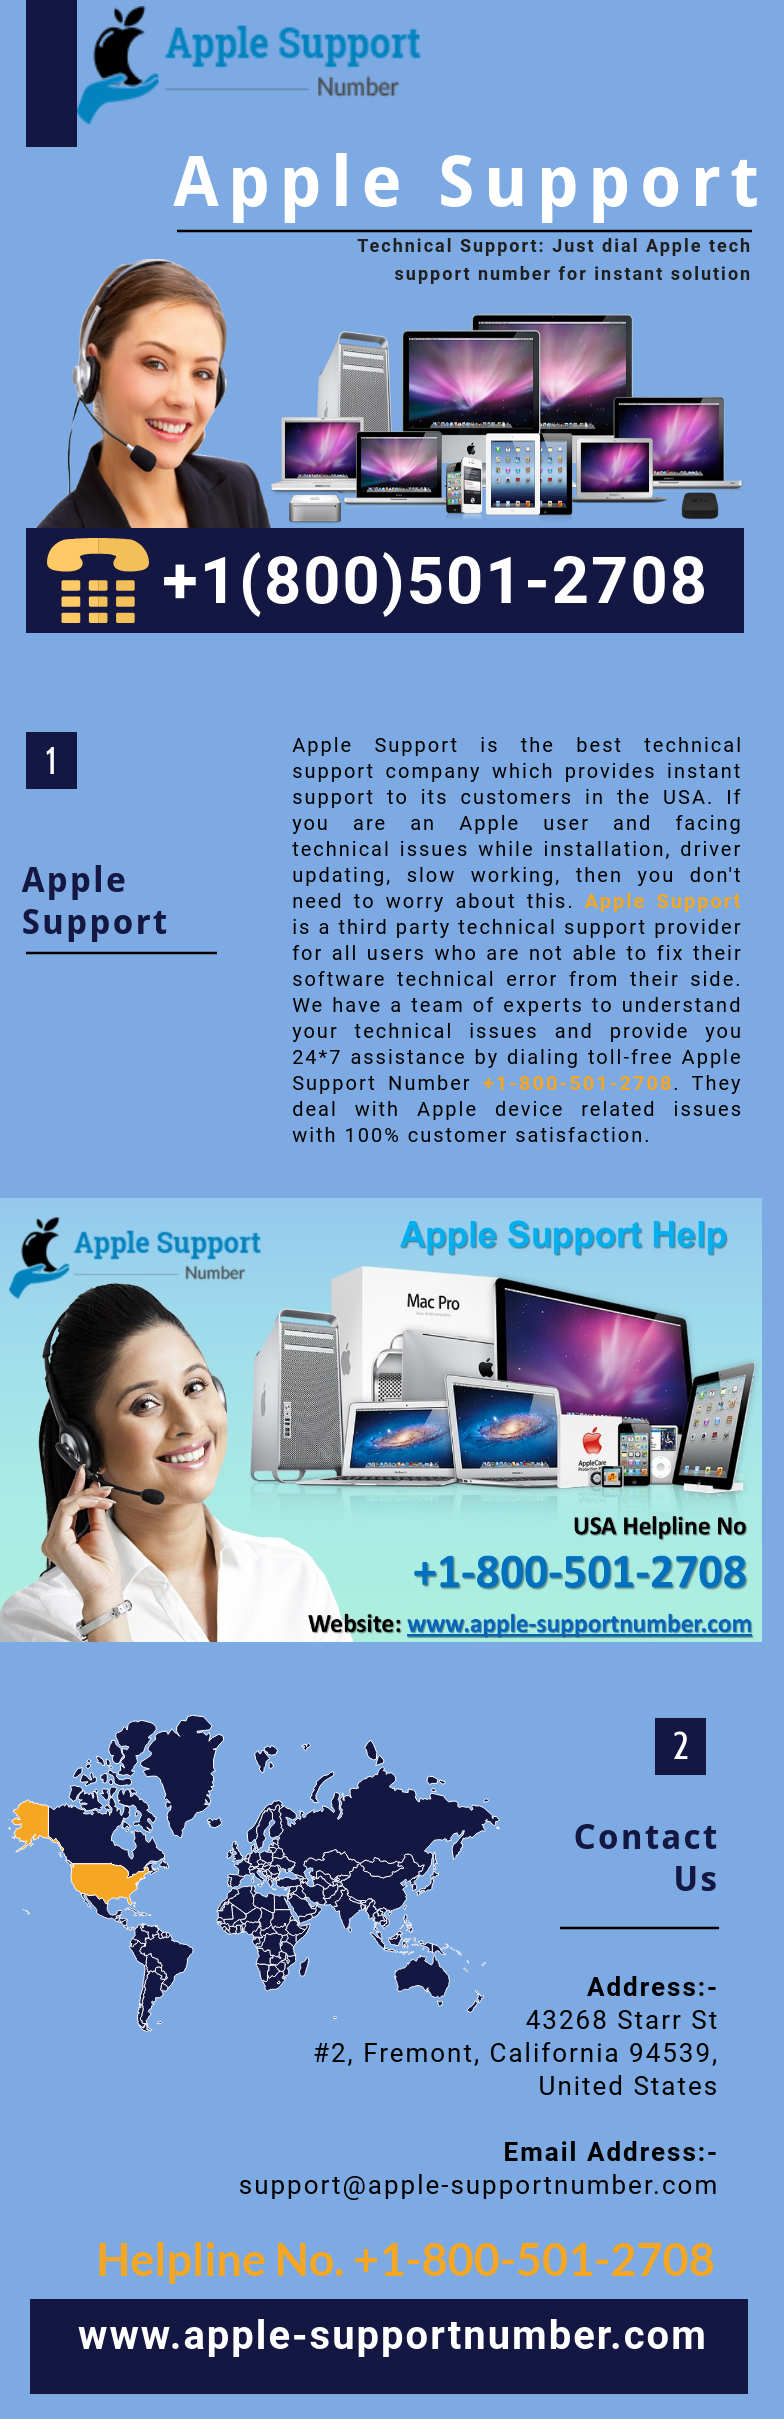 Pin by Apple Support Number on Apple Support Number +1800